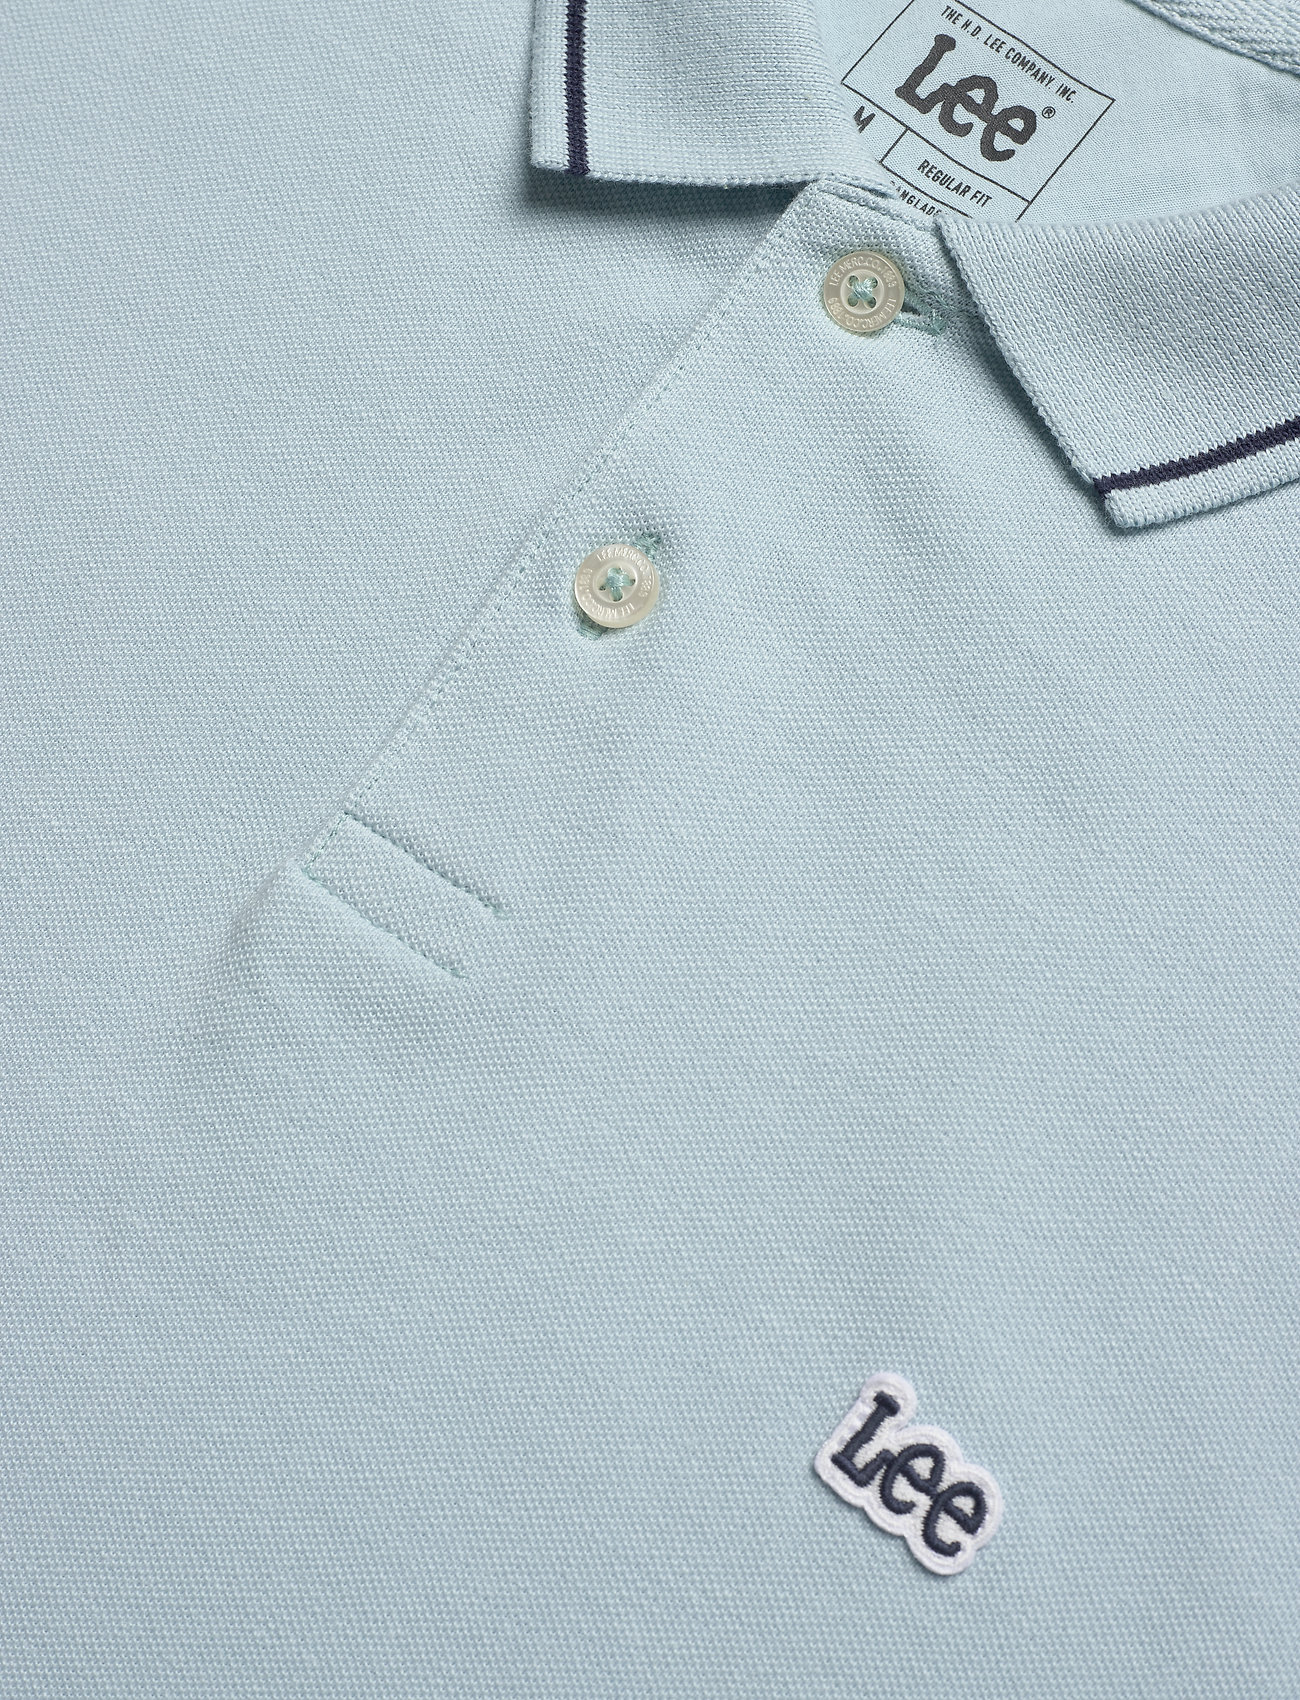 Lee Jeans PIQUE POLO - Poloskjorter STERLING BLUE - Menn Klær